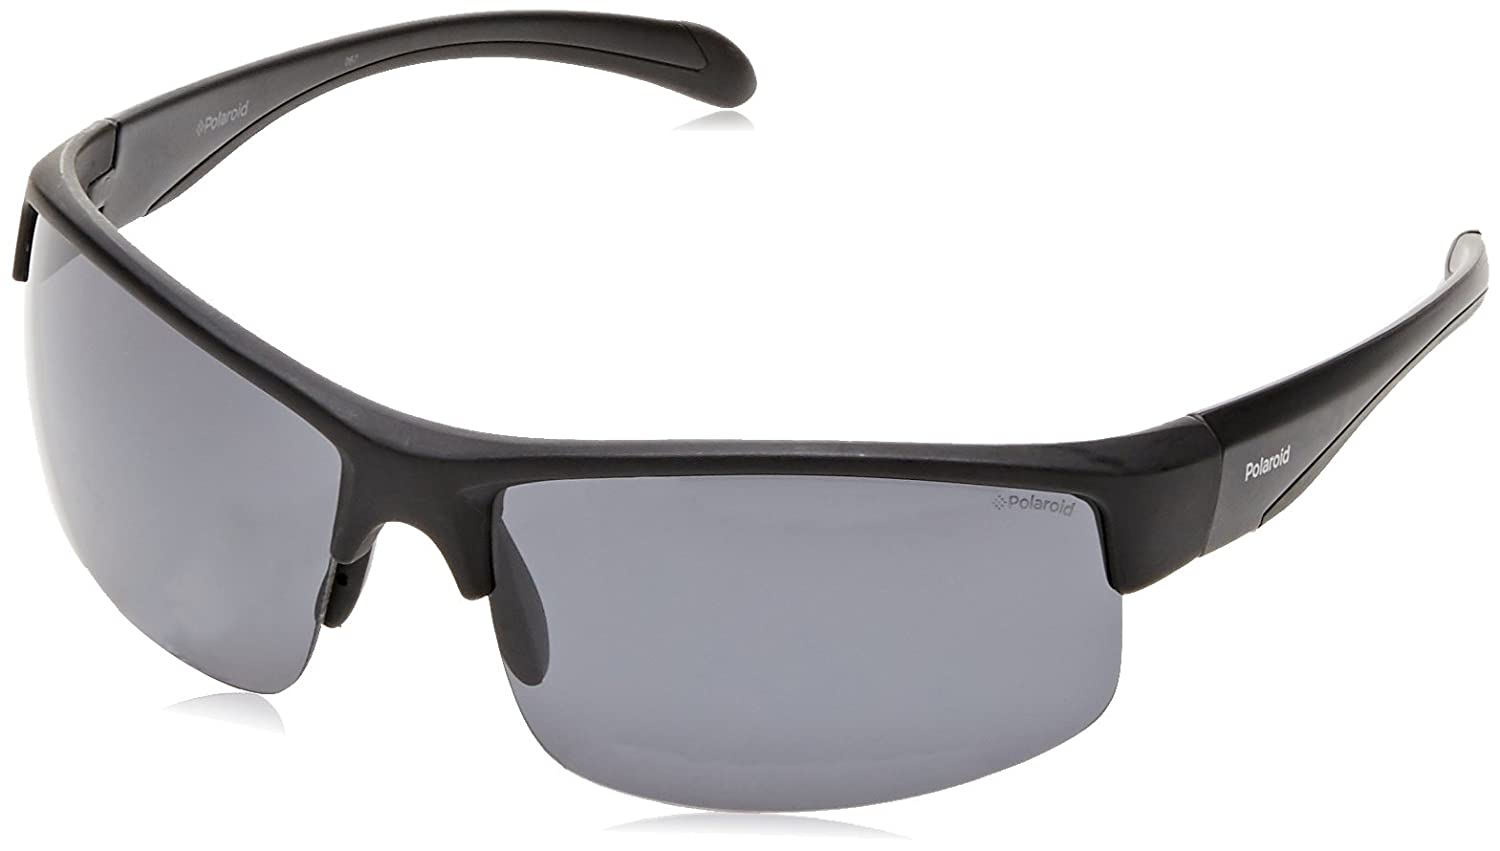 Amazon.com: POLAROID SUNGLASSES PLS 7019 S 807 M9 BLACK ...